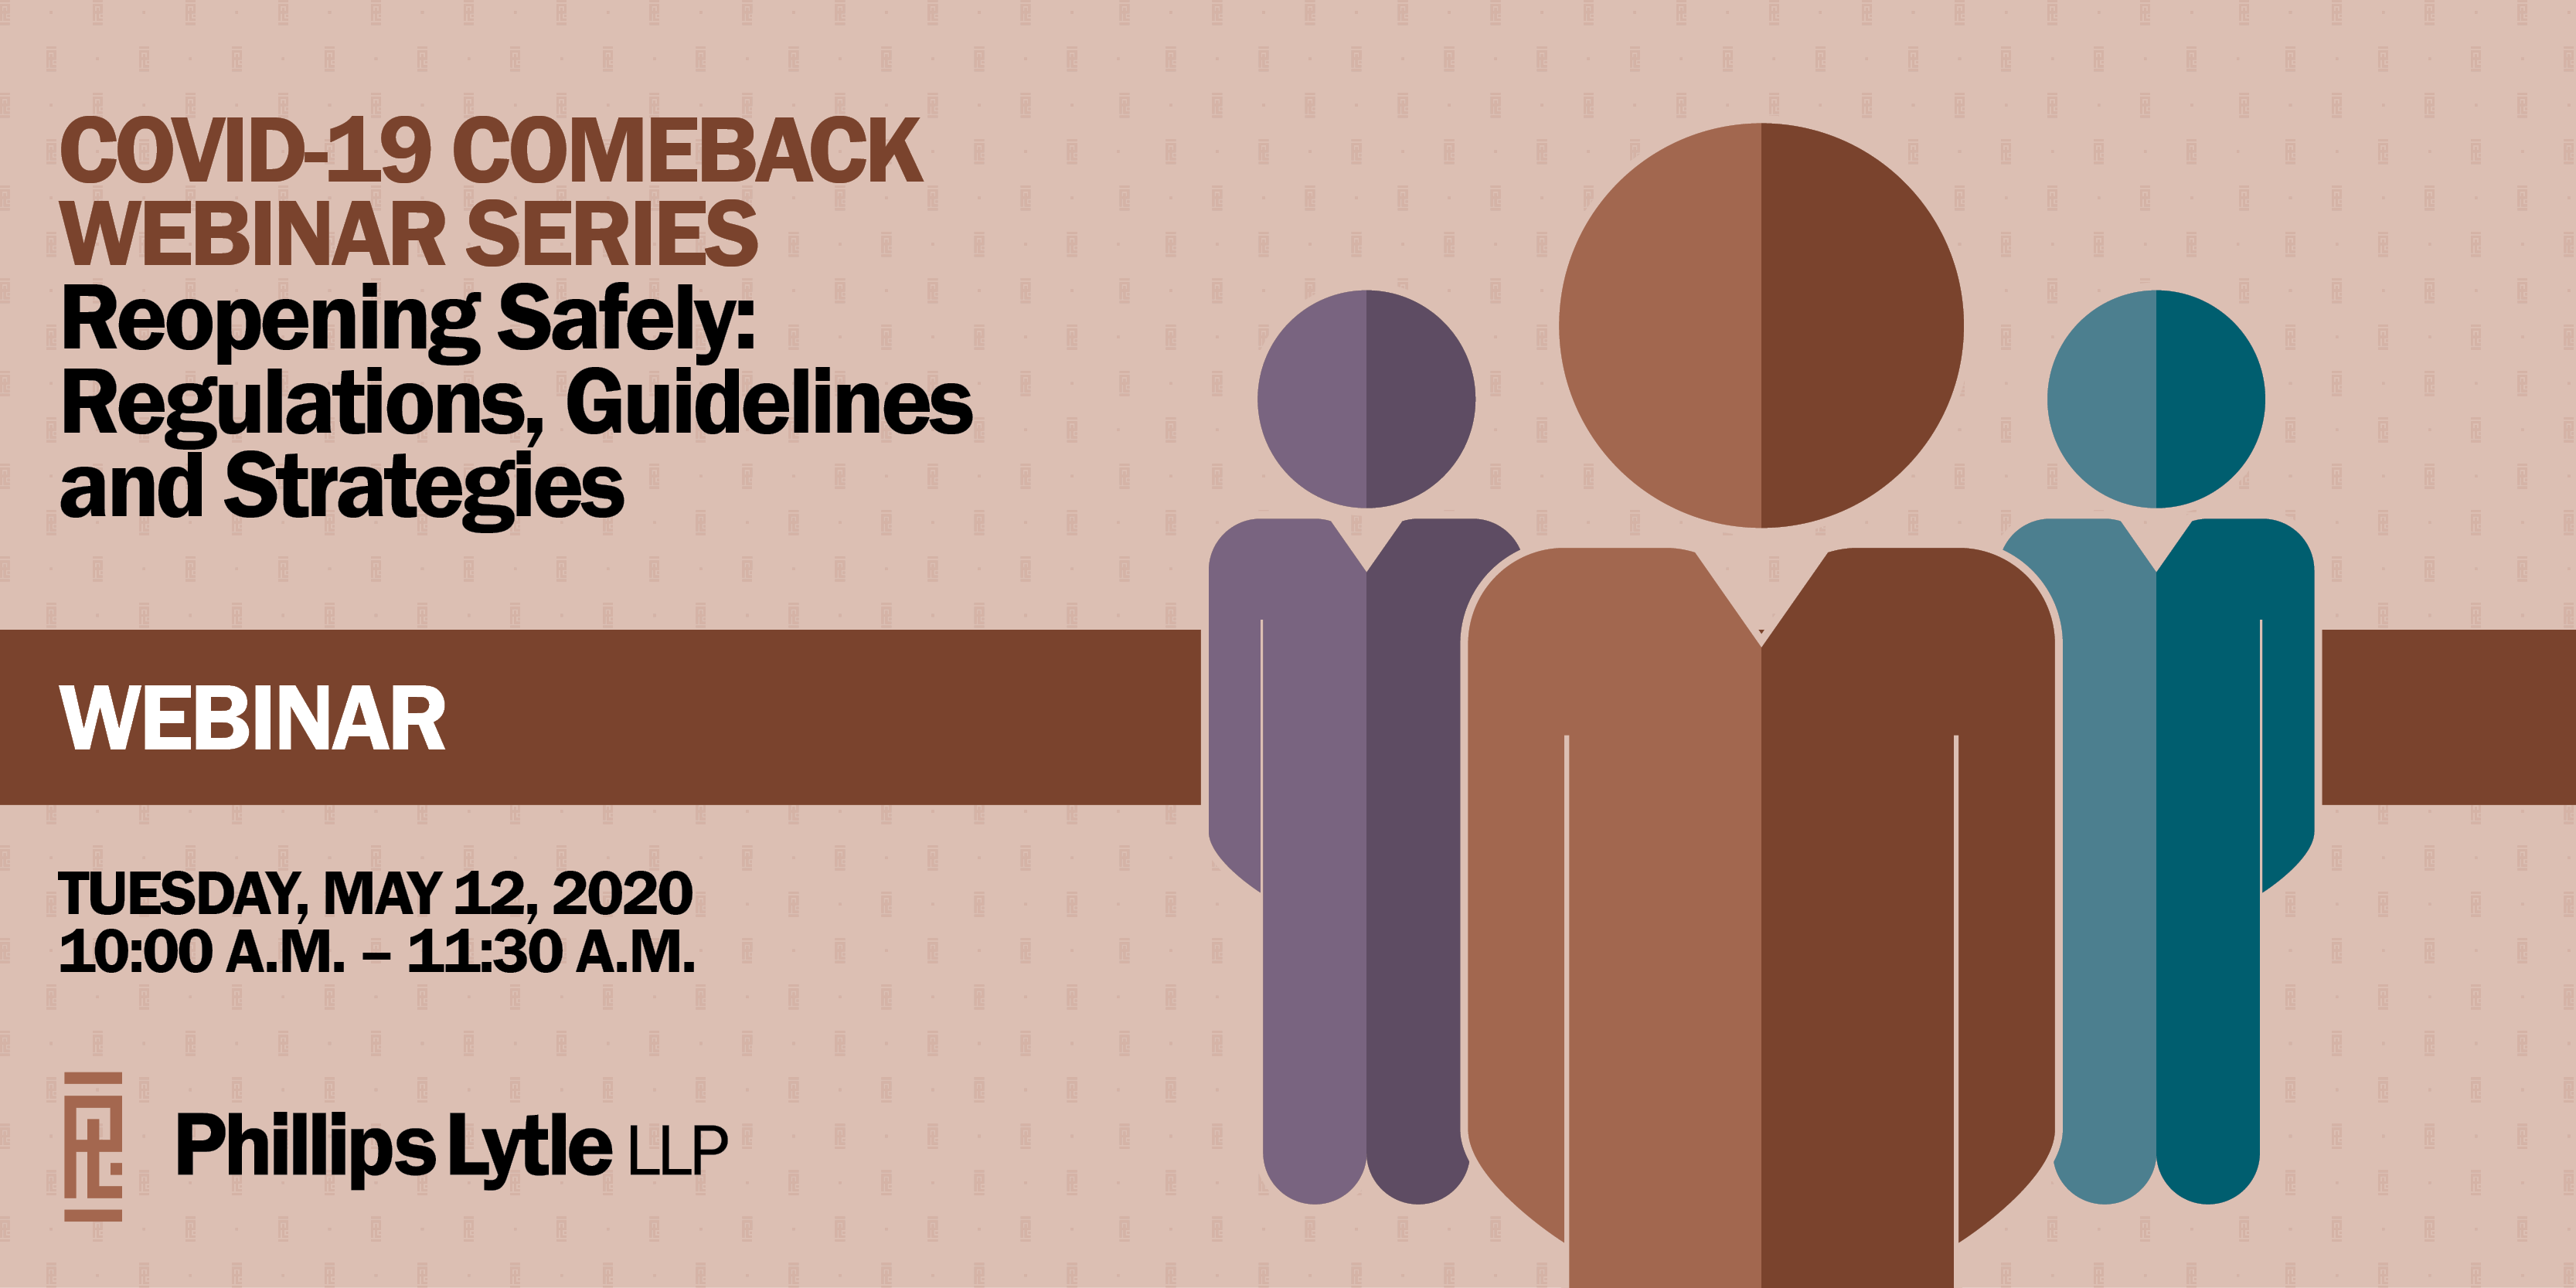 Webinar | COVID-19 Comeback Series | Reopening Safely: Regulations, Guidelines and Strategies